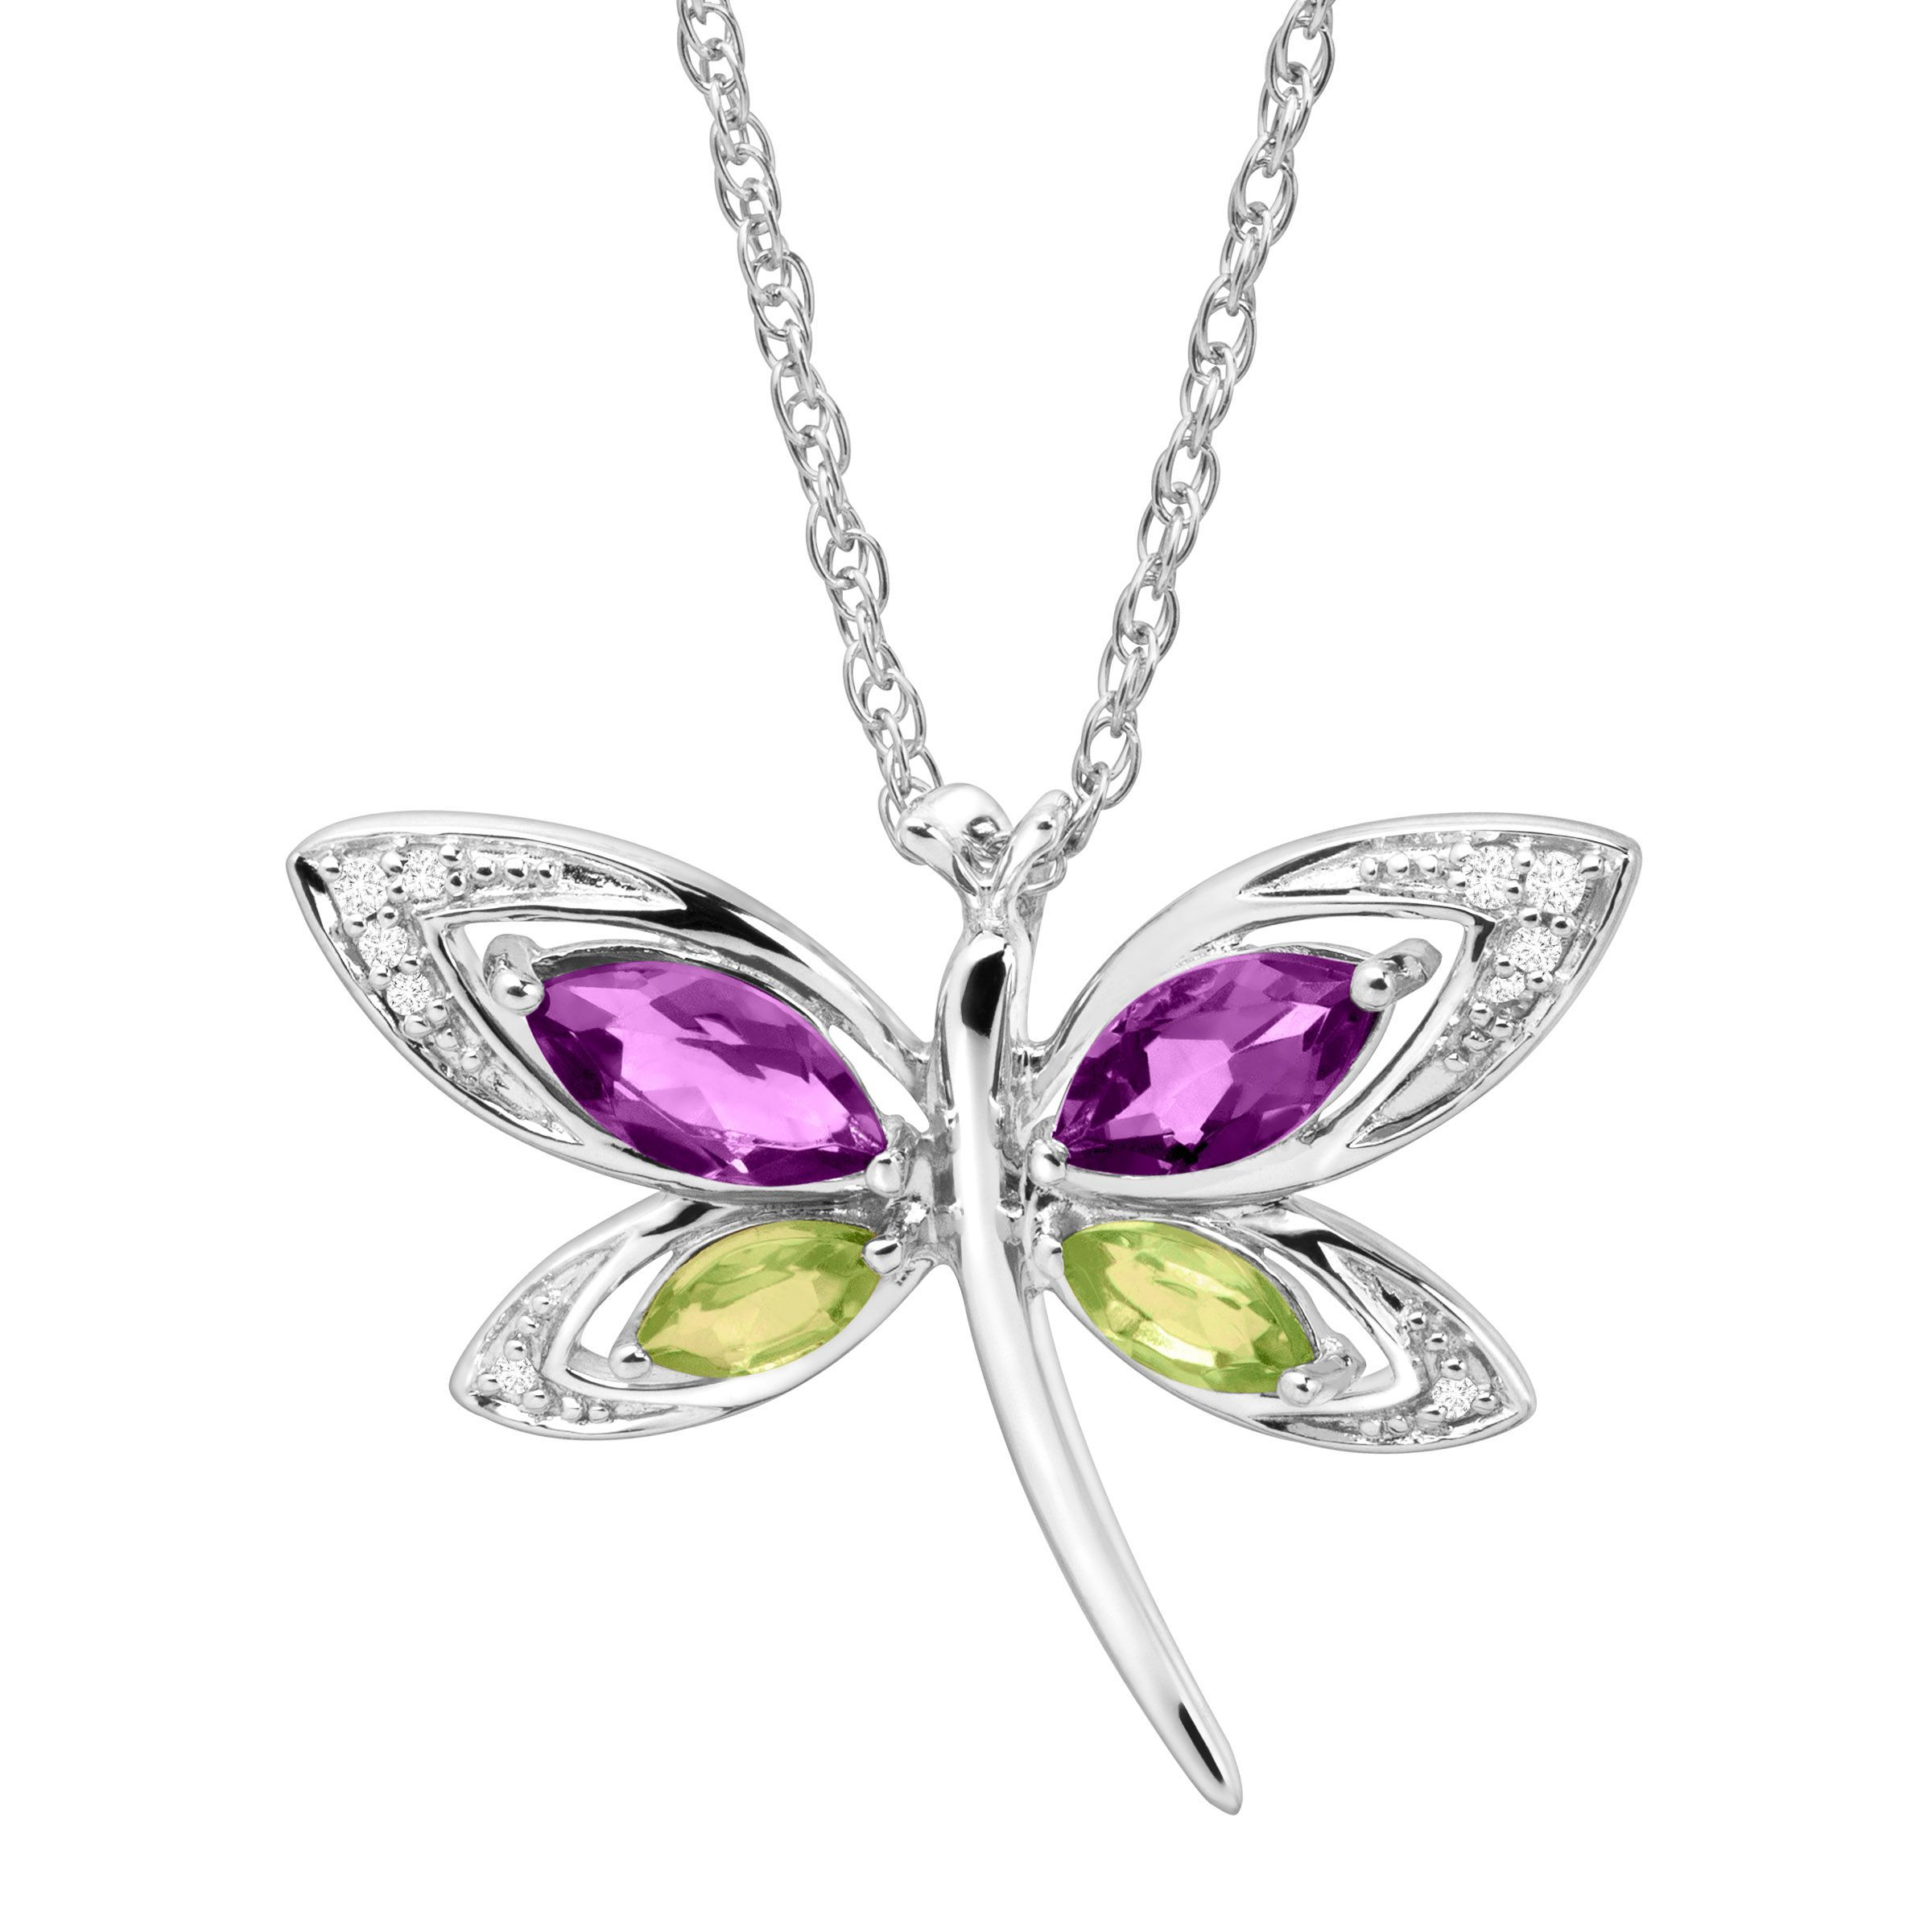 si by silver exclusivity dragonfly pendant product designexclusivity sterling large